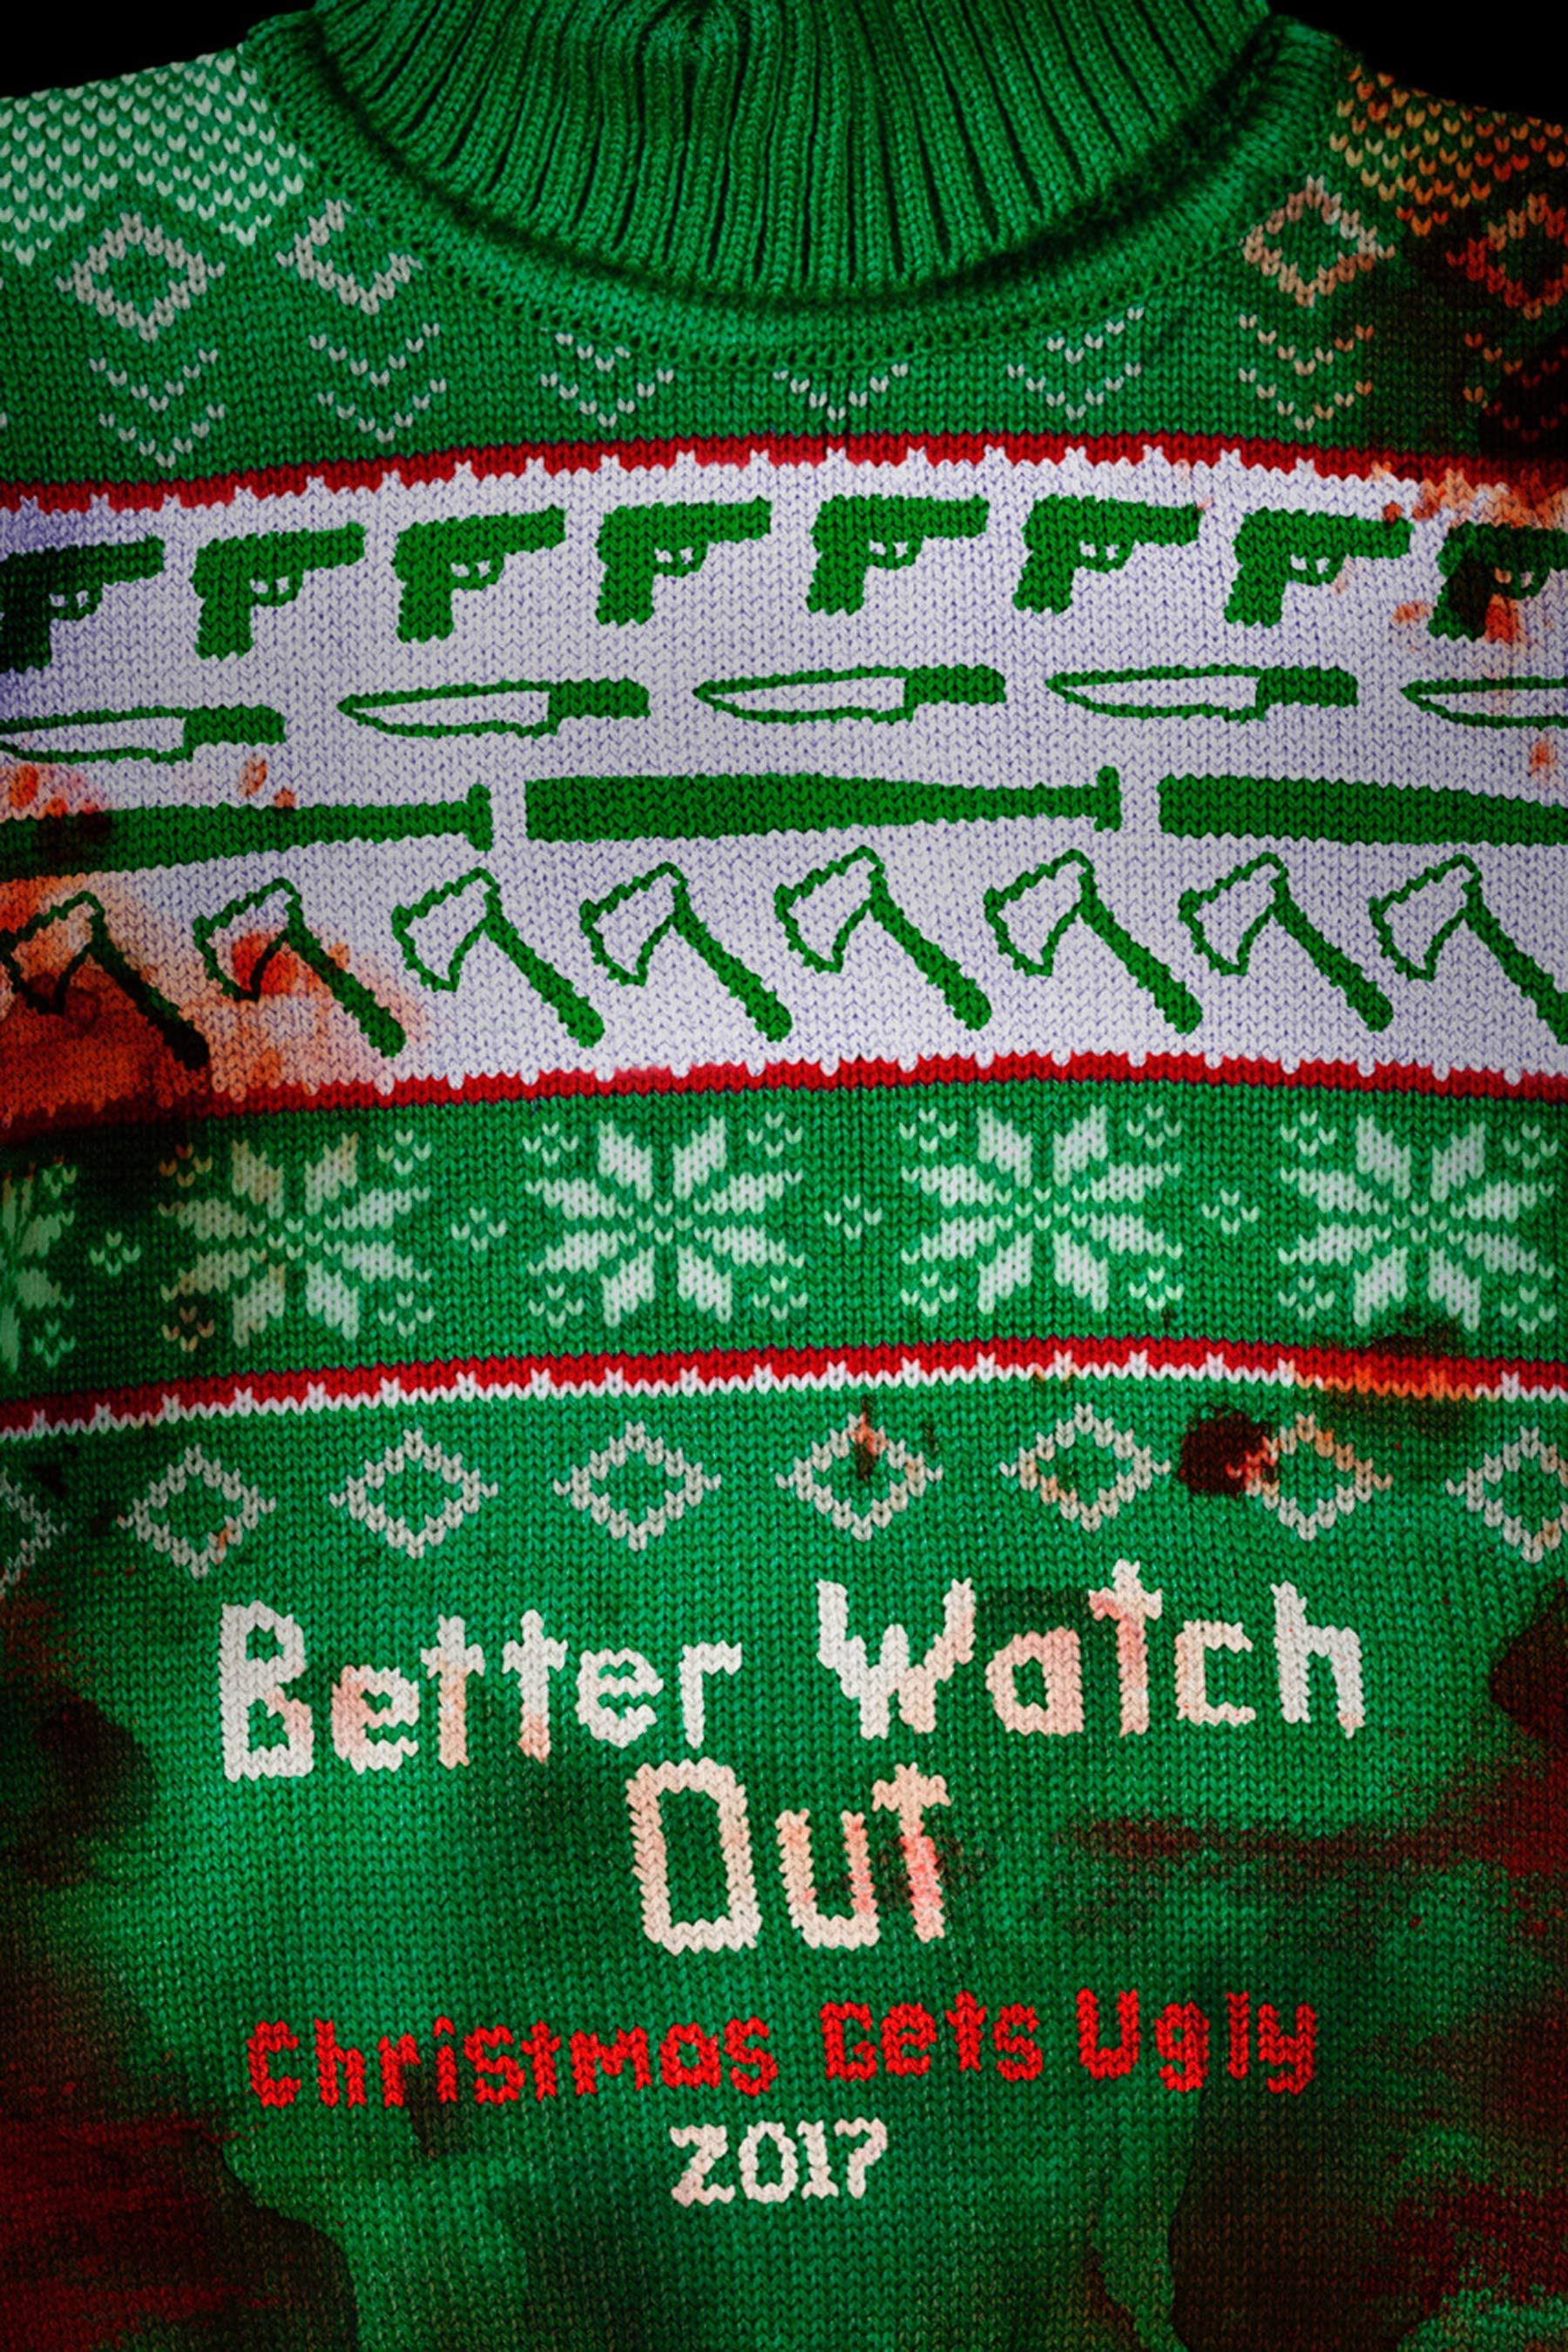 better-watch-out (1)